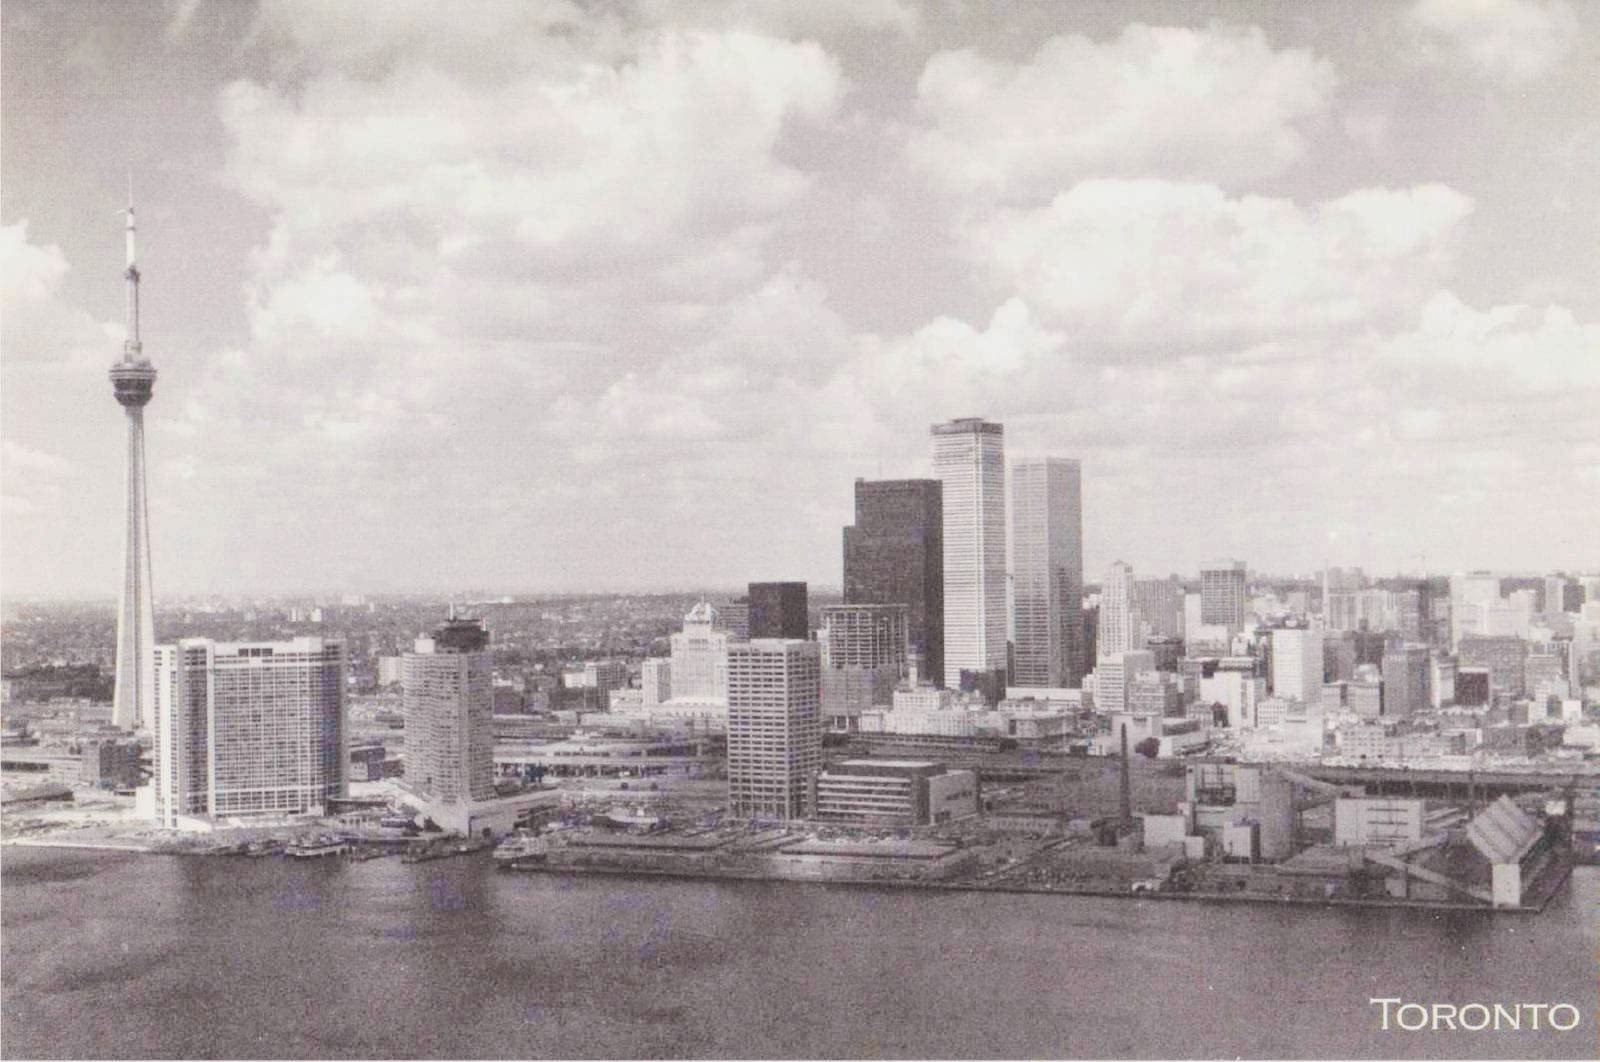 POSTCARD - TORONTO - SKYLINE FROM LAKE - AERIAL - CN TOWER AND BANK OF MONTREAL ALMOST FINISHED - 1975